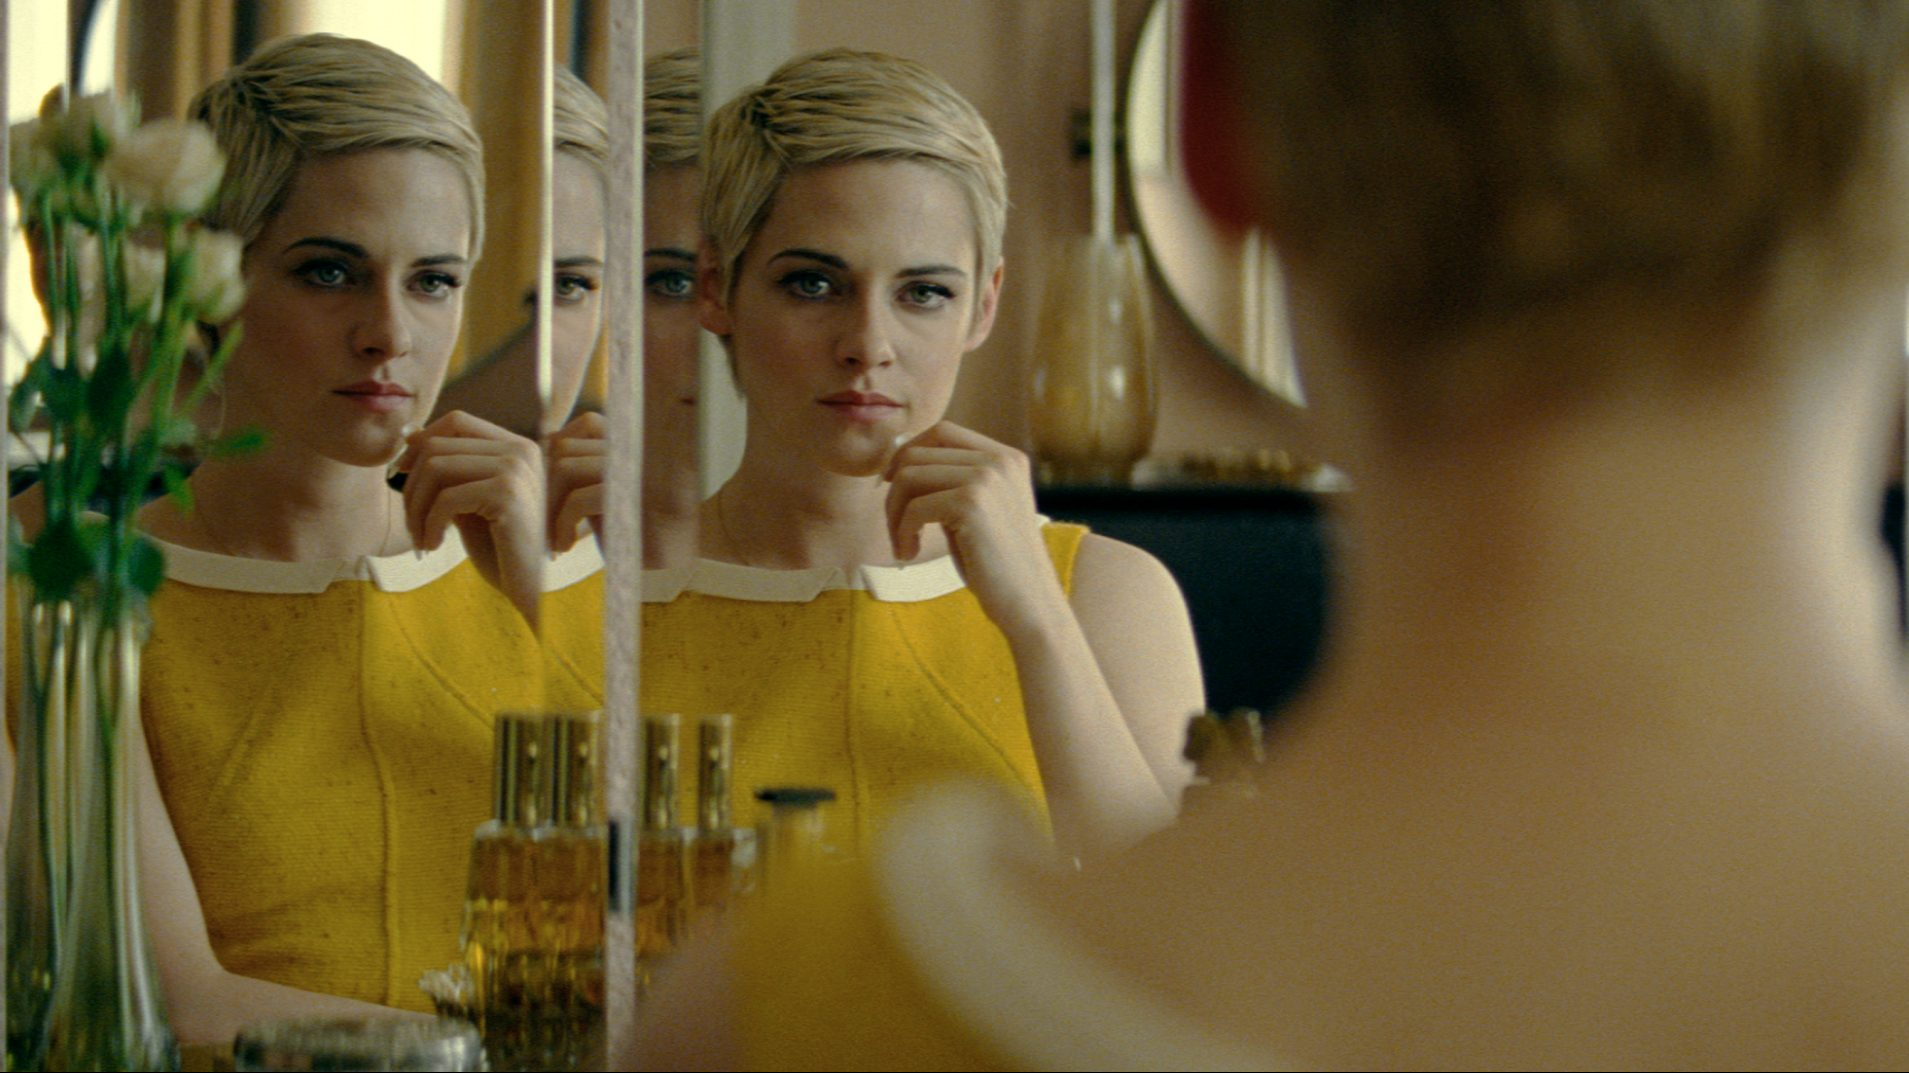 Seberg (Benedict Andrews, 2020), Amazon Studios, UK / USA, 35mm, colour, sound, 102 minutes, Jean Seberg (Kristen Stewart)